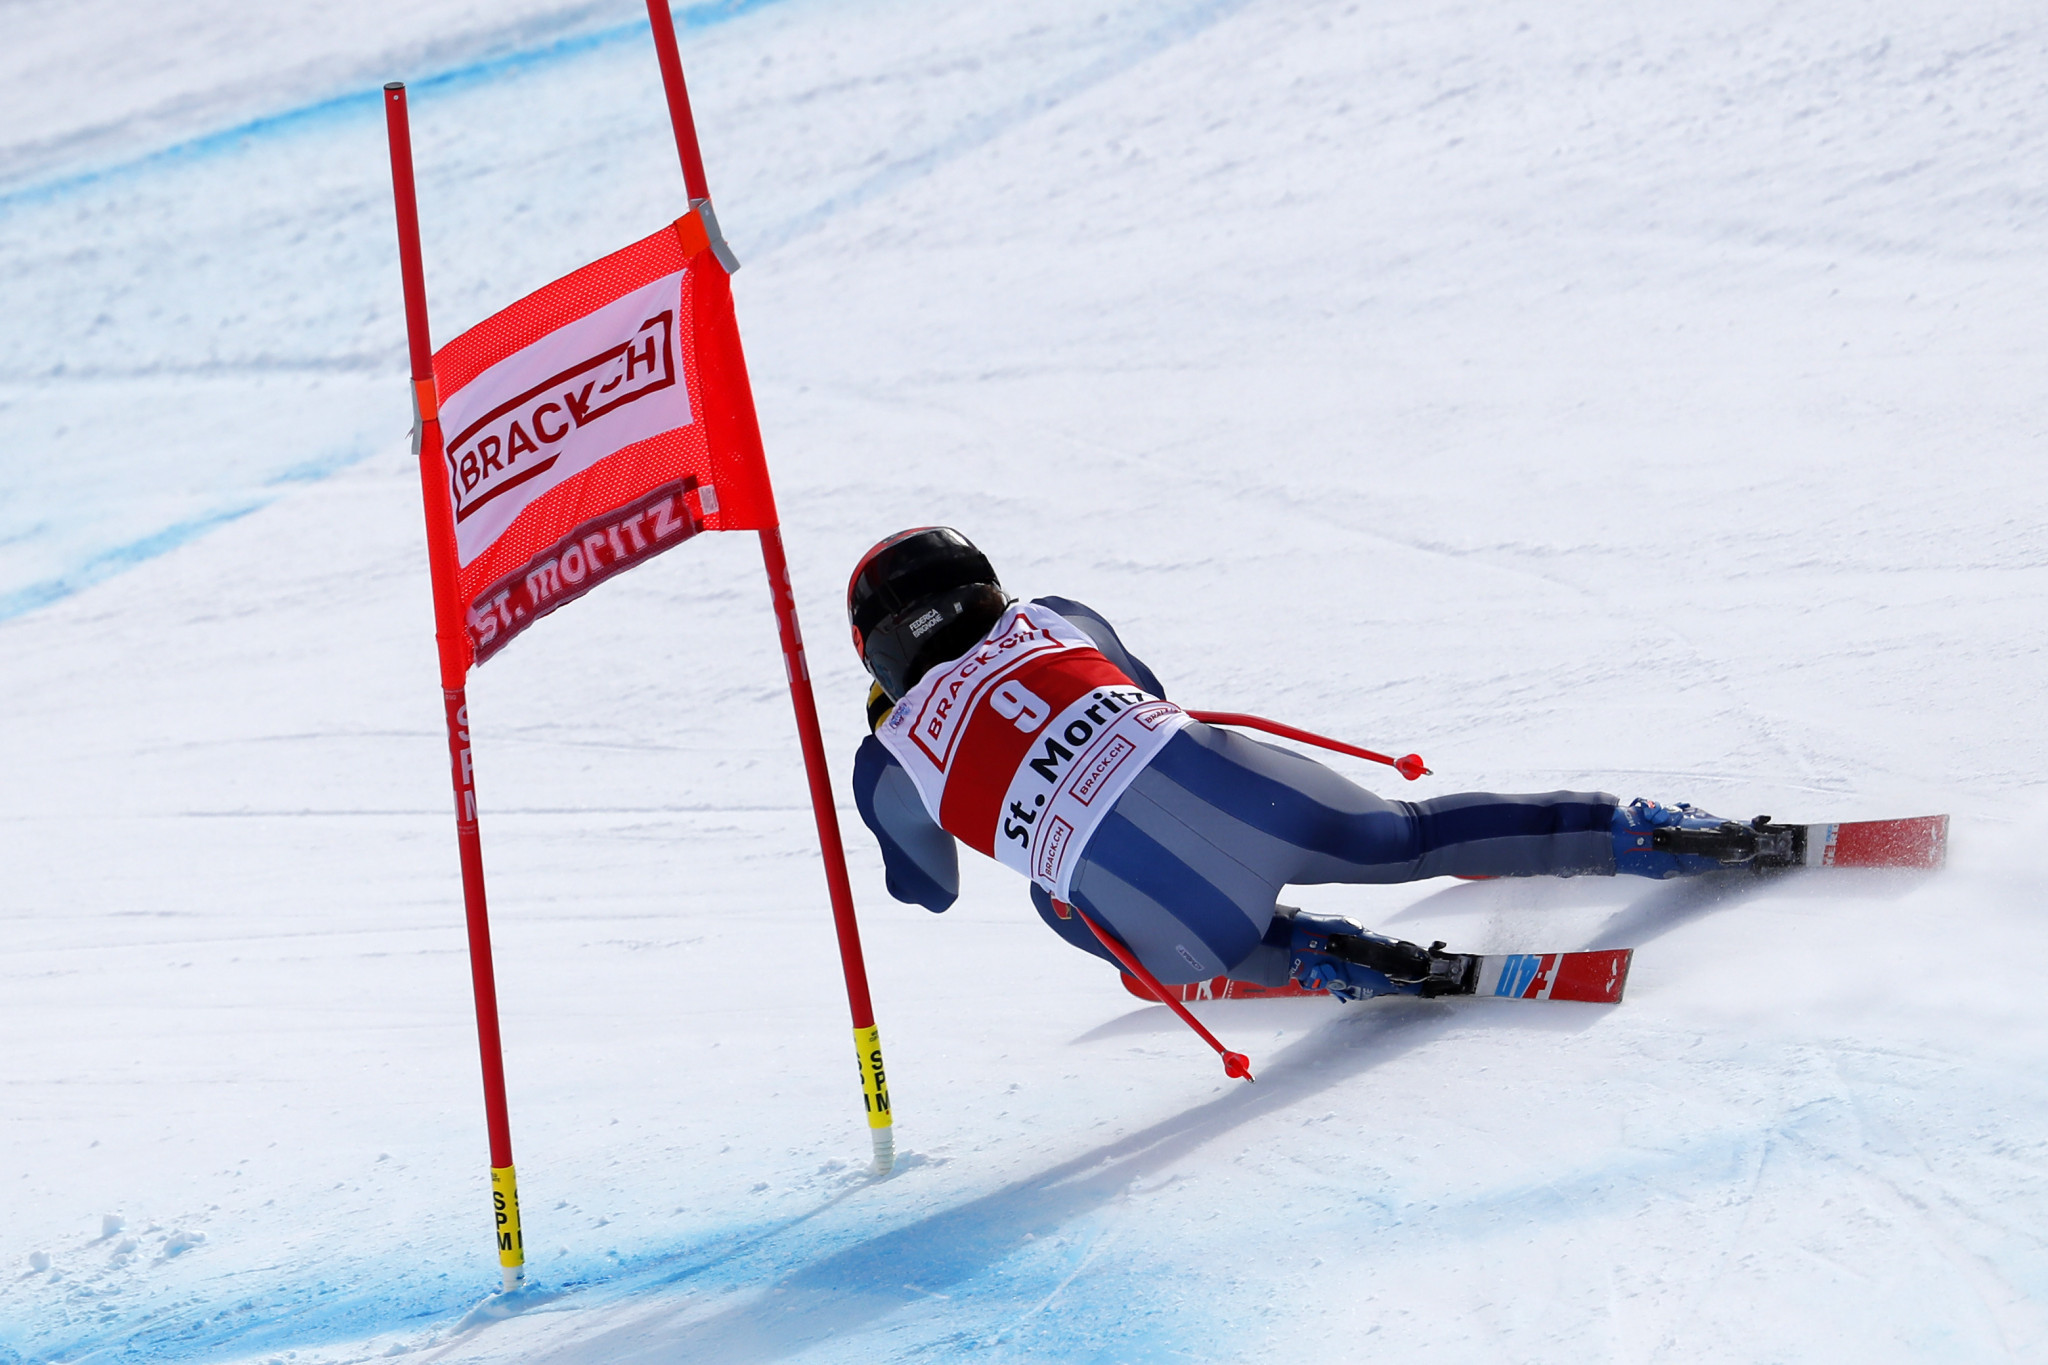 Federica Brignone finished just 0.01 seconds behind the winner ©Getty Images